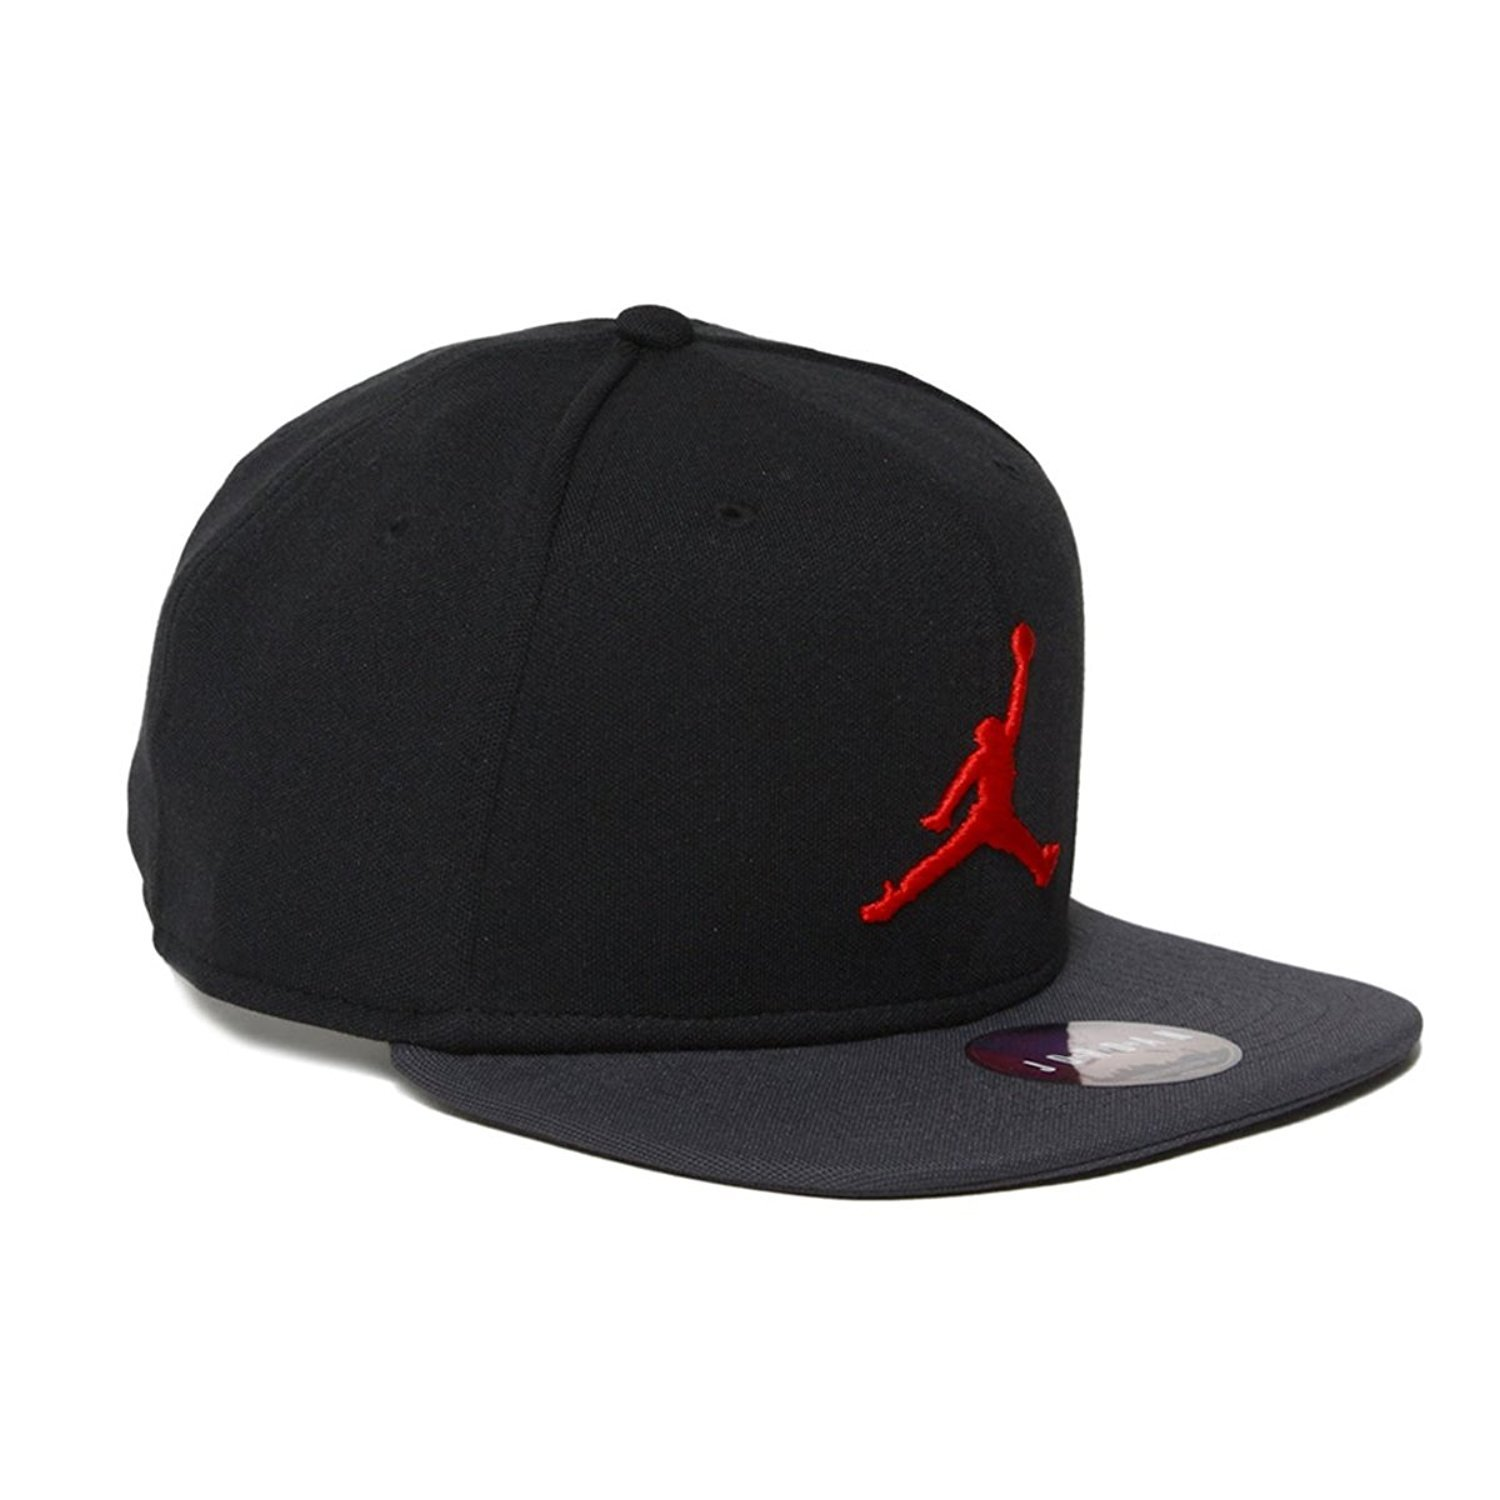 59b768d914c ... switzerland nike nike mens jordan jumpman snapback hat 861452 016 black  dark shadow red walmart a4041